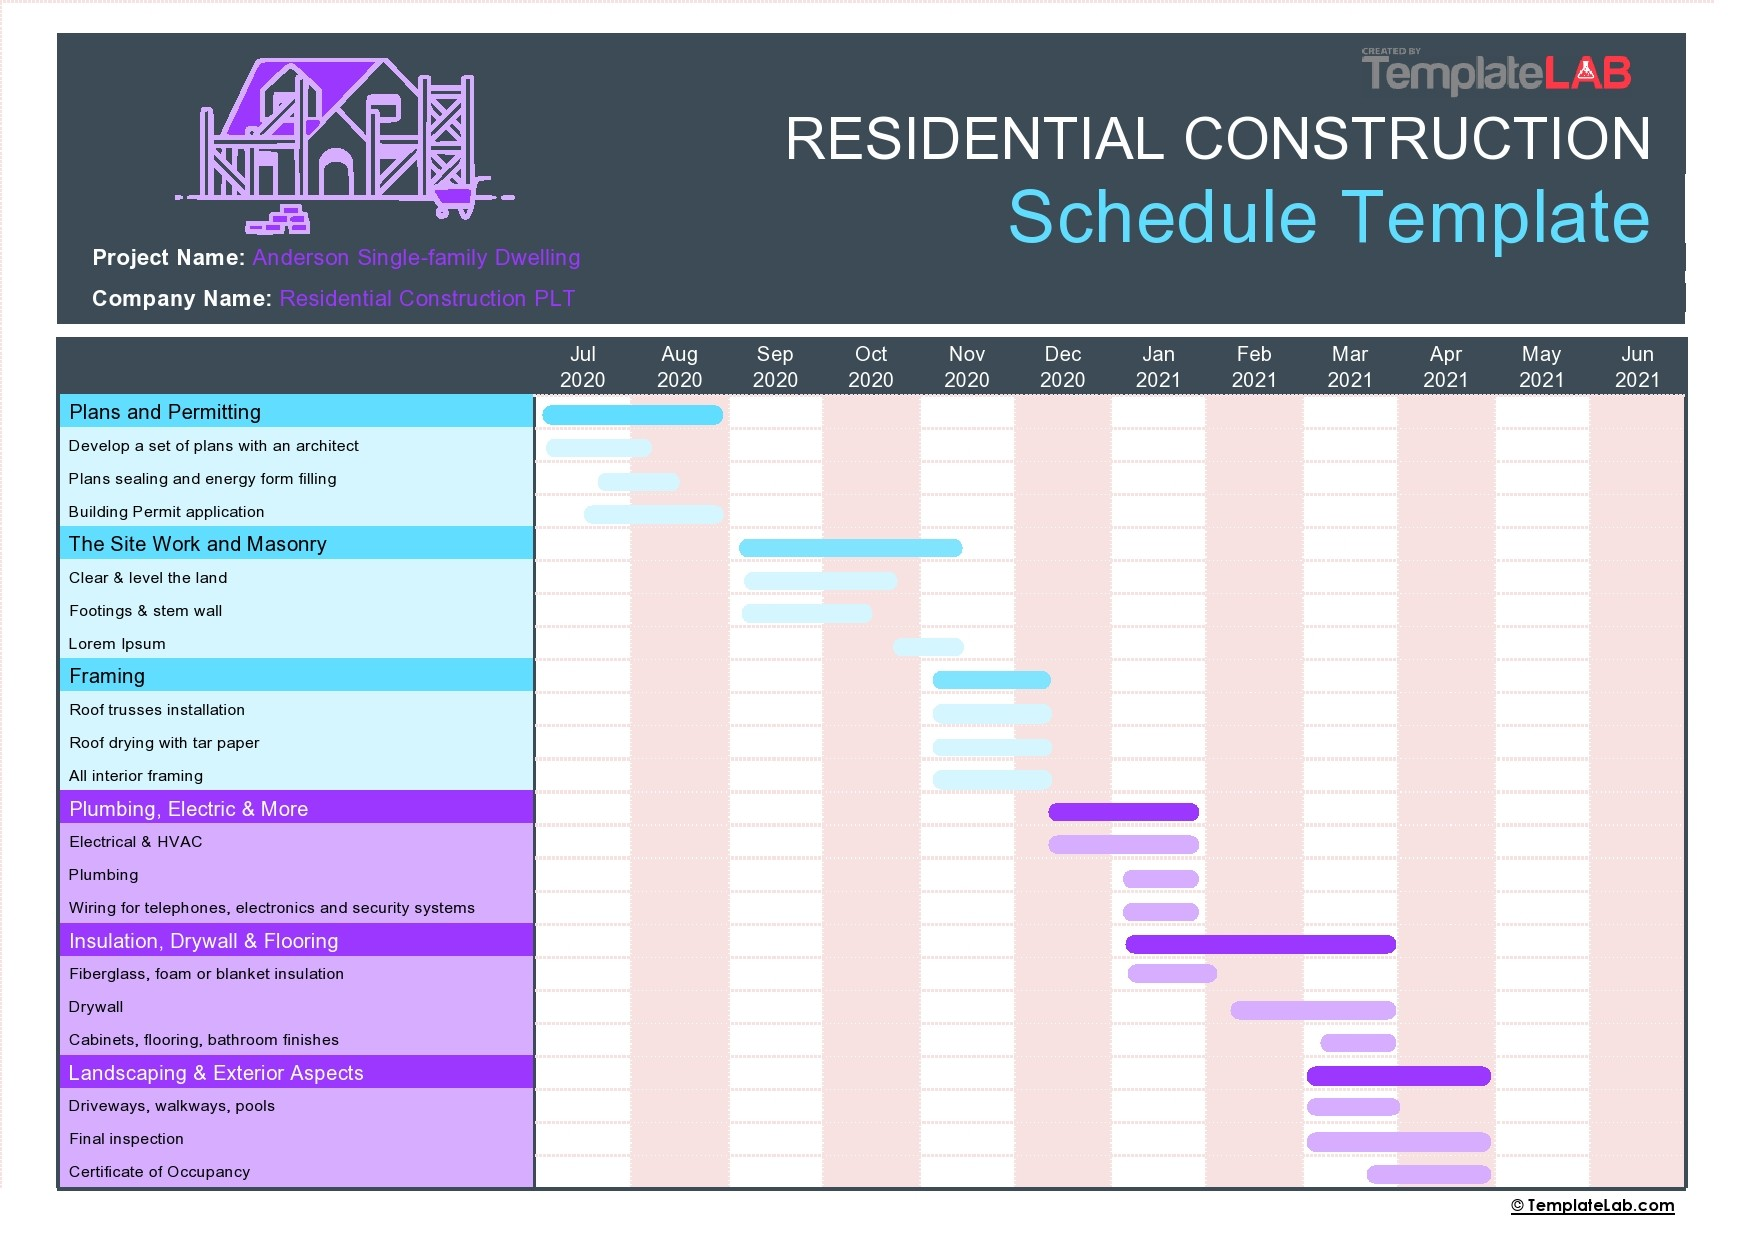 23 Construction Schedule Templates in Word & Excel ᐅ ...